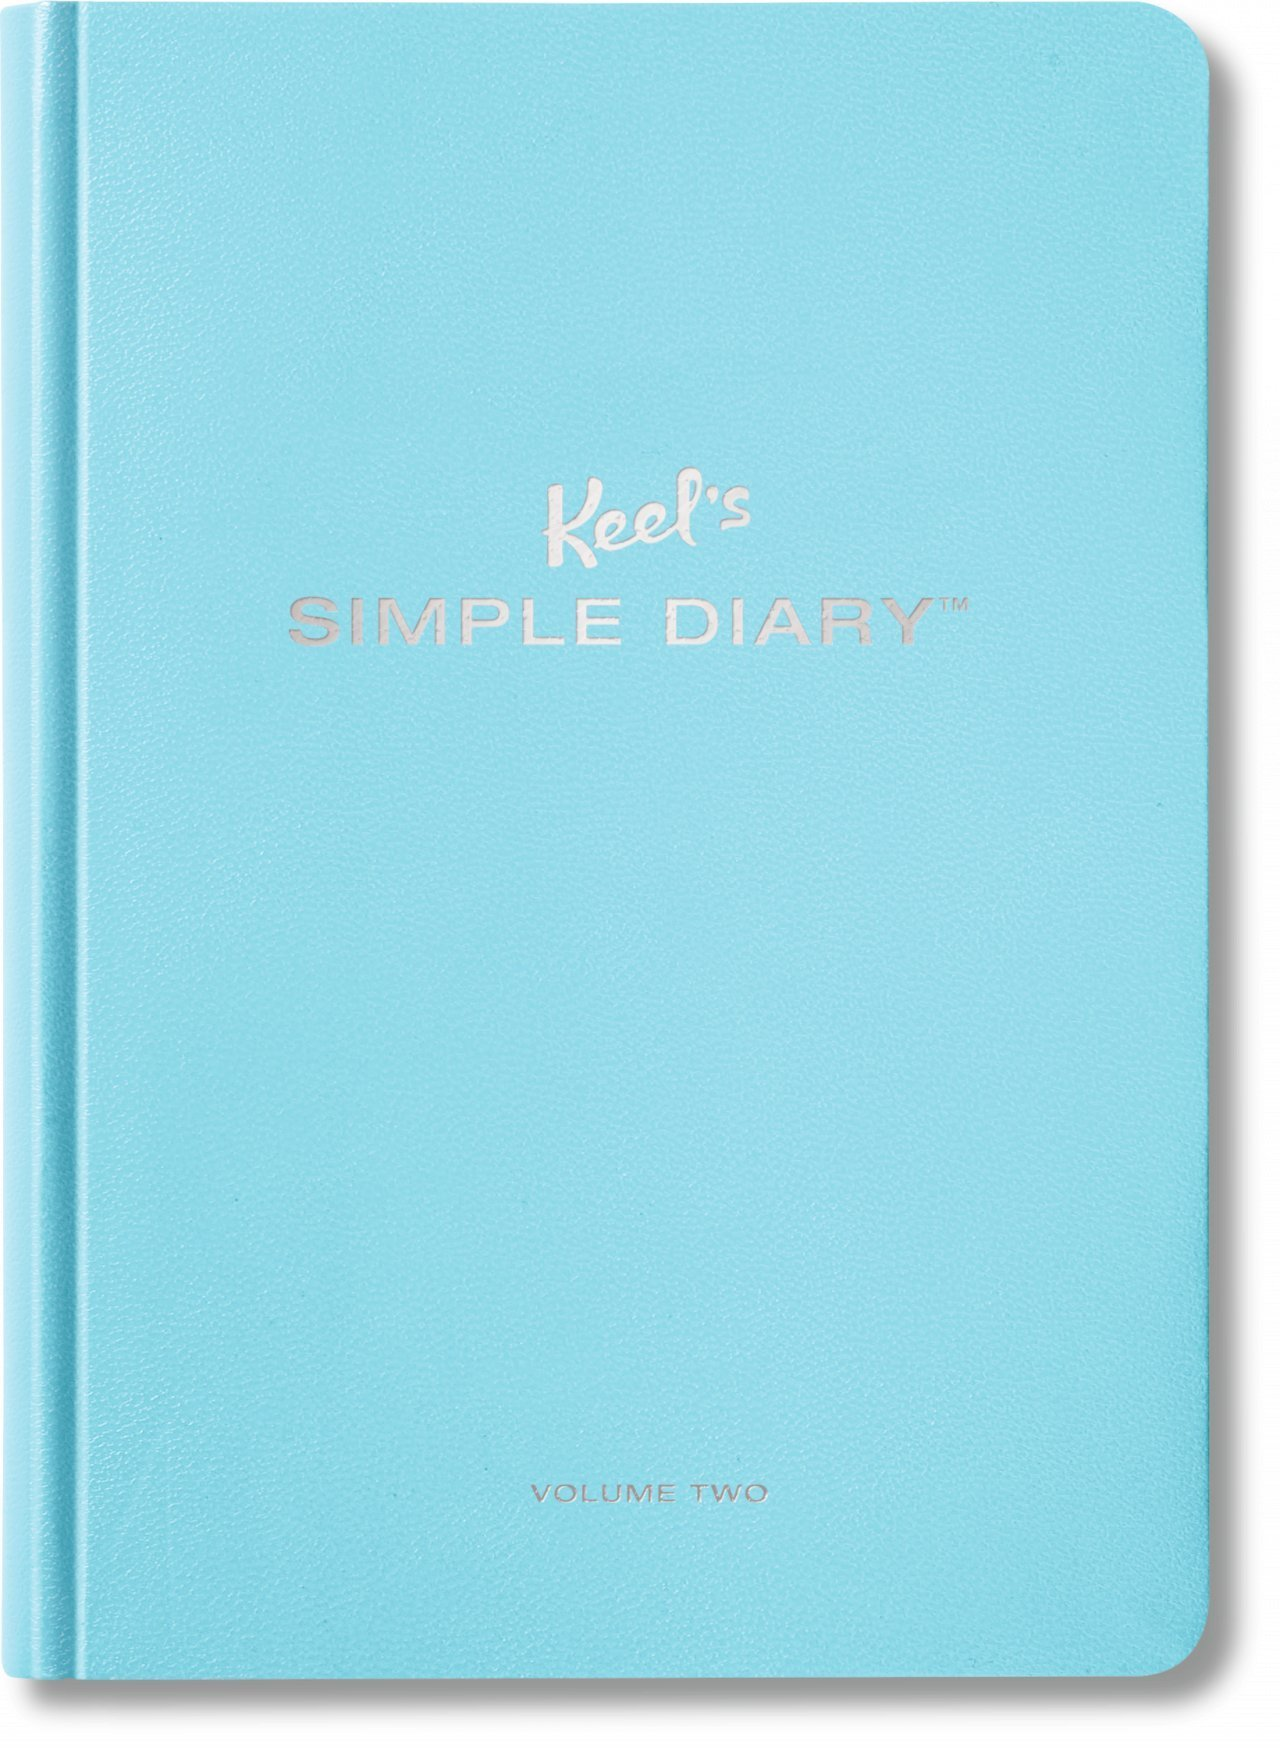 KEEL'S SIMPLE DIARY VOLUME TWO (LIGHT BLUE) - VA